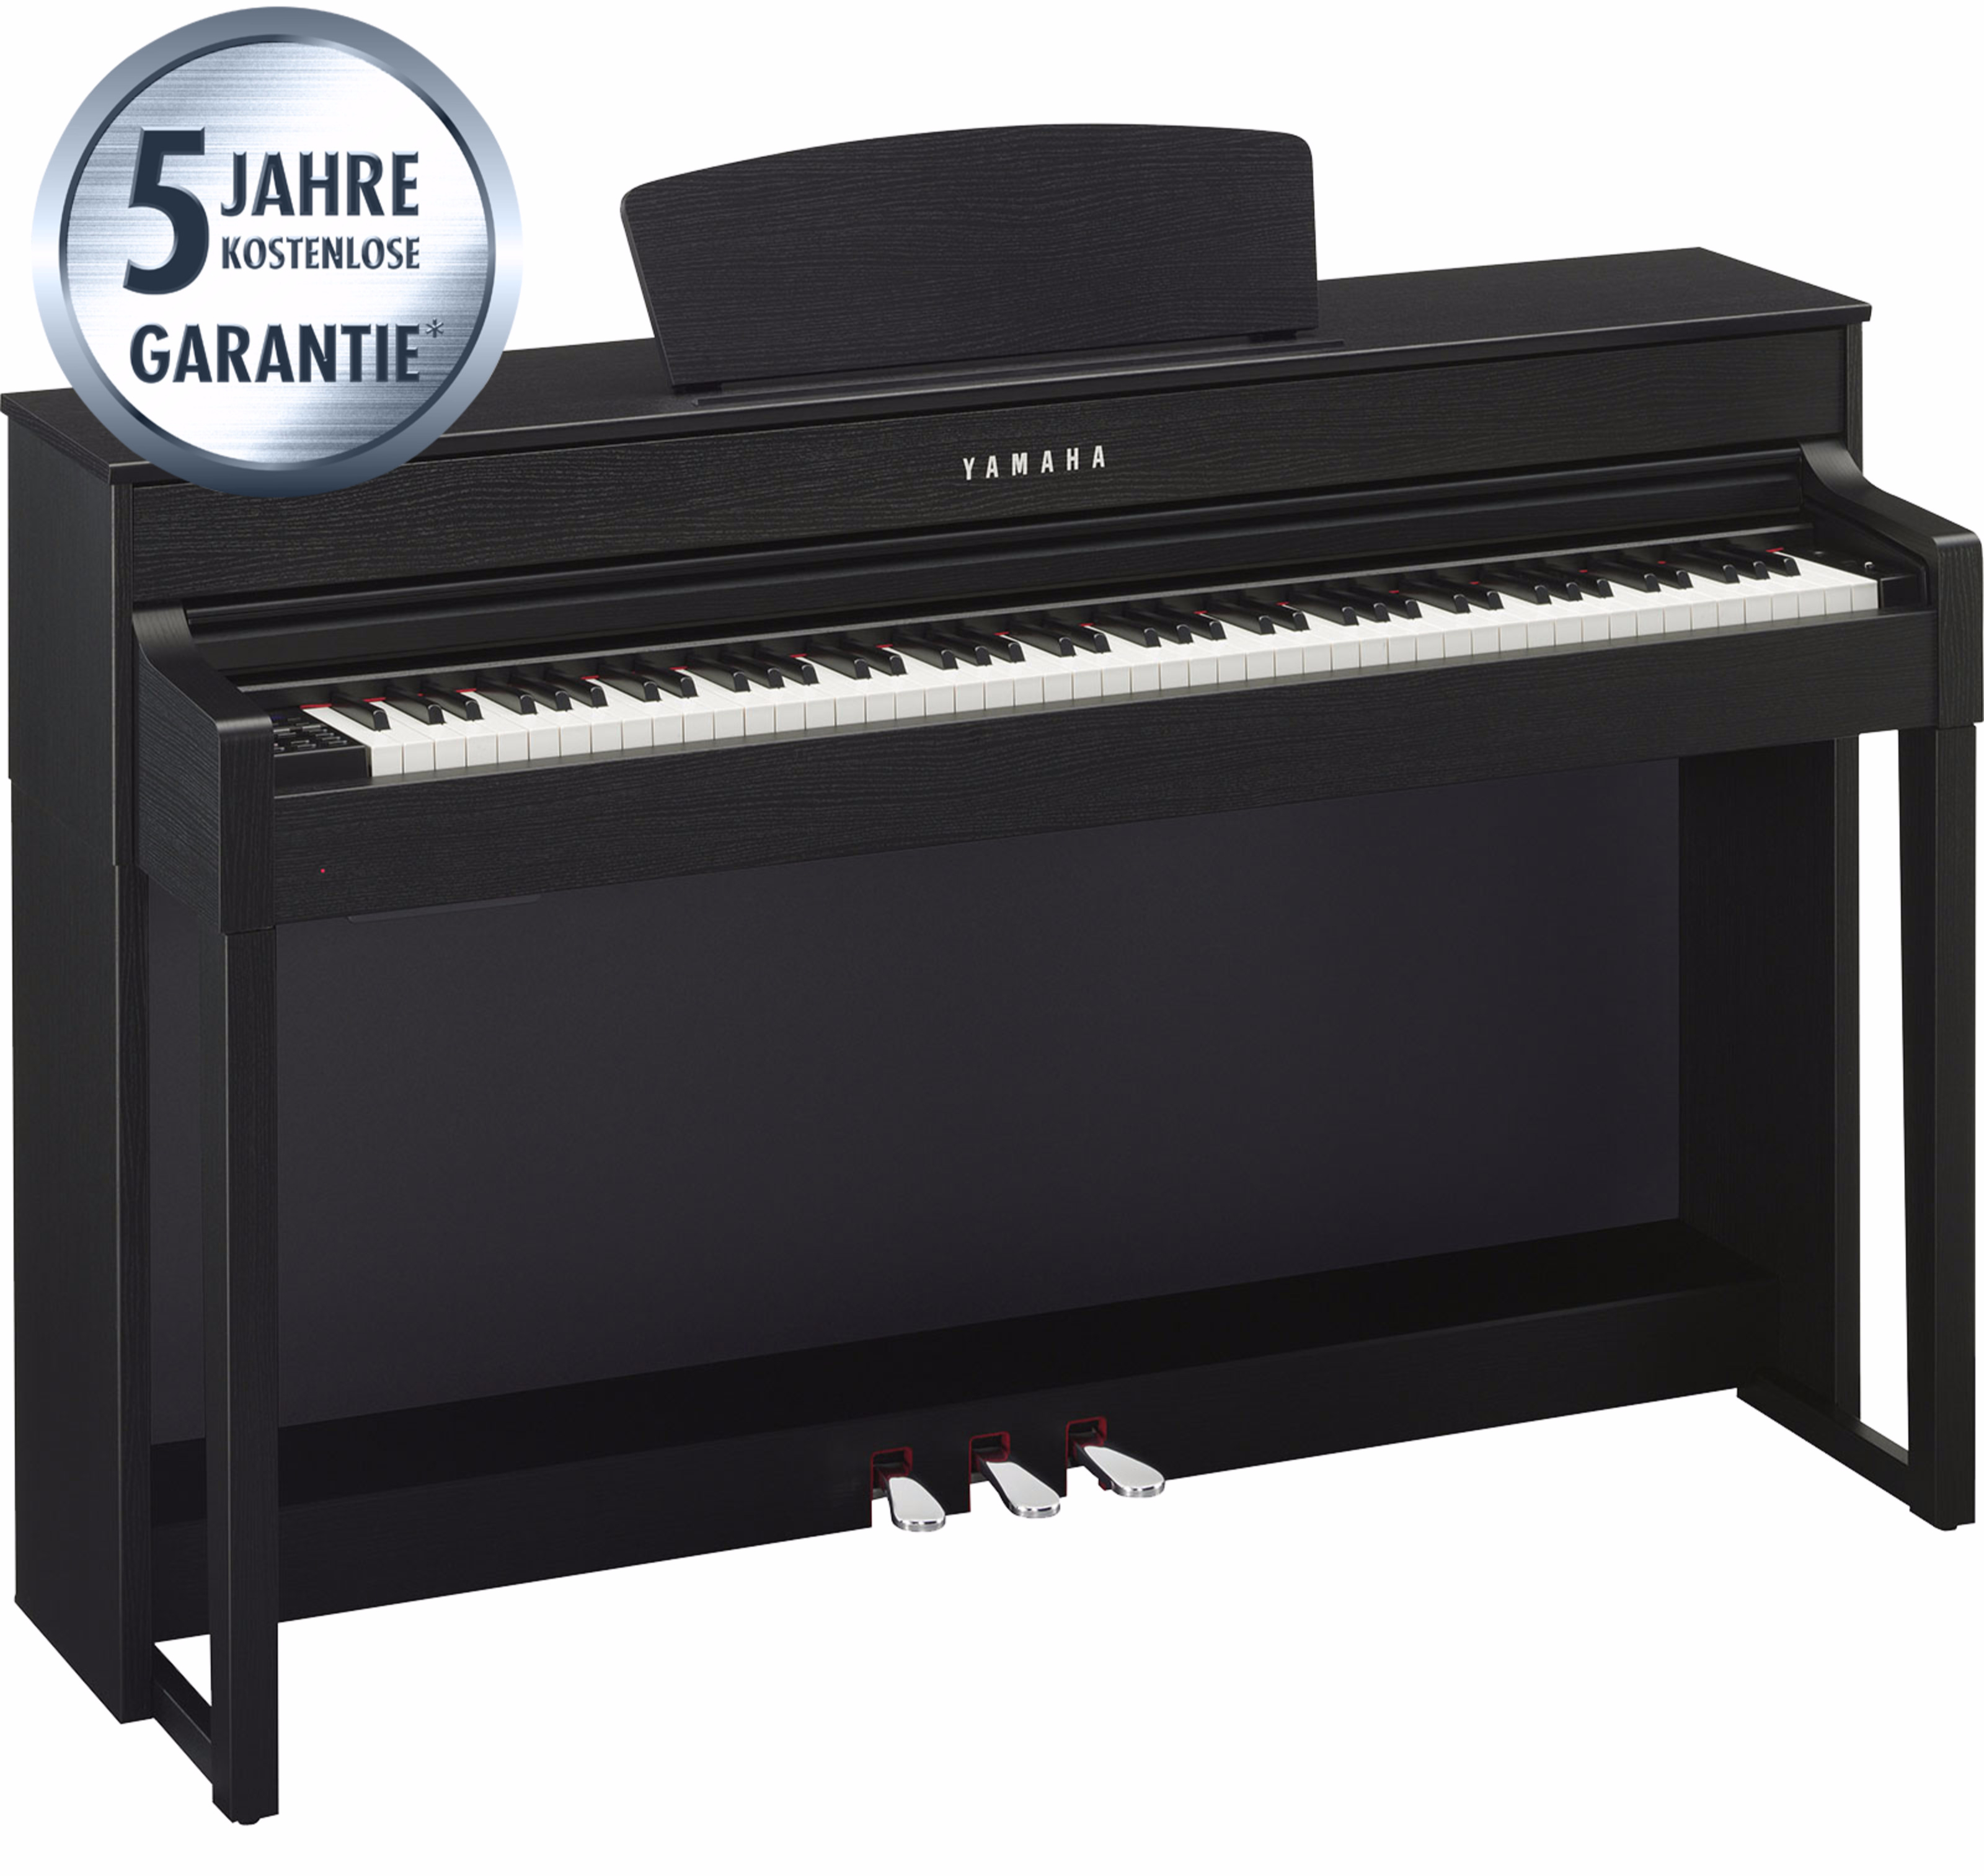 Yamaha CLP-535 B Digital Piano